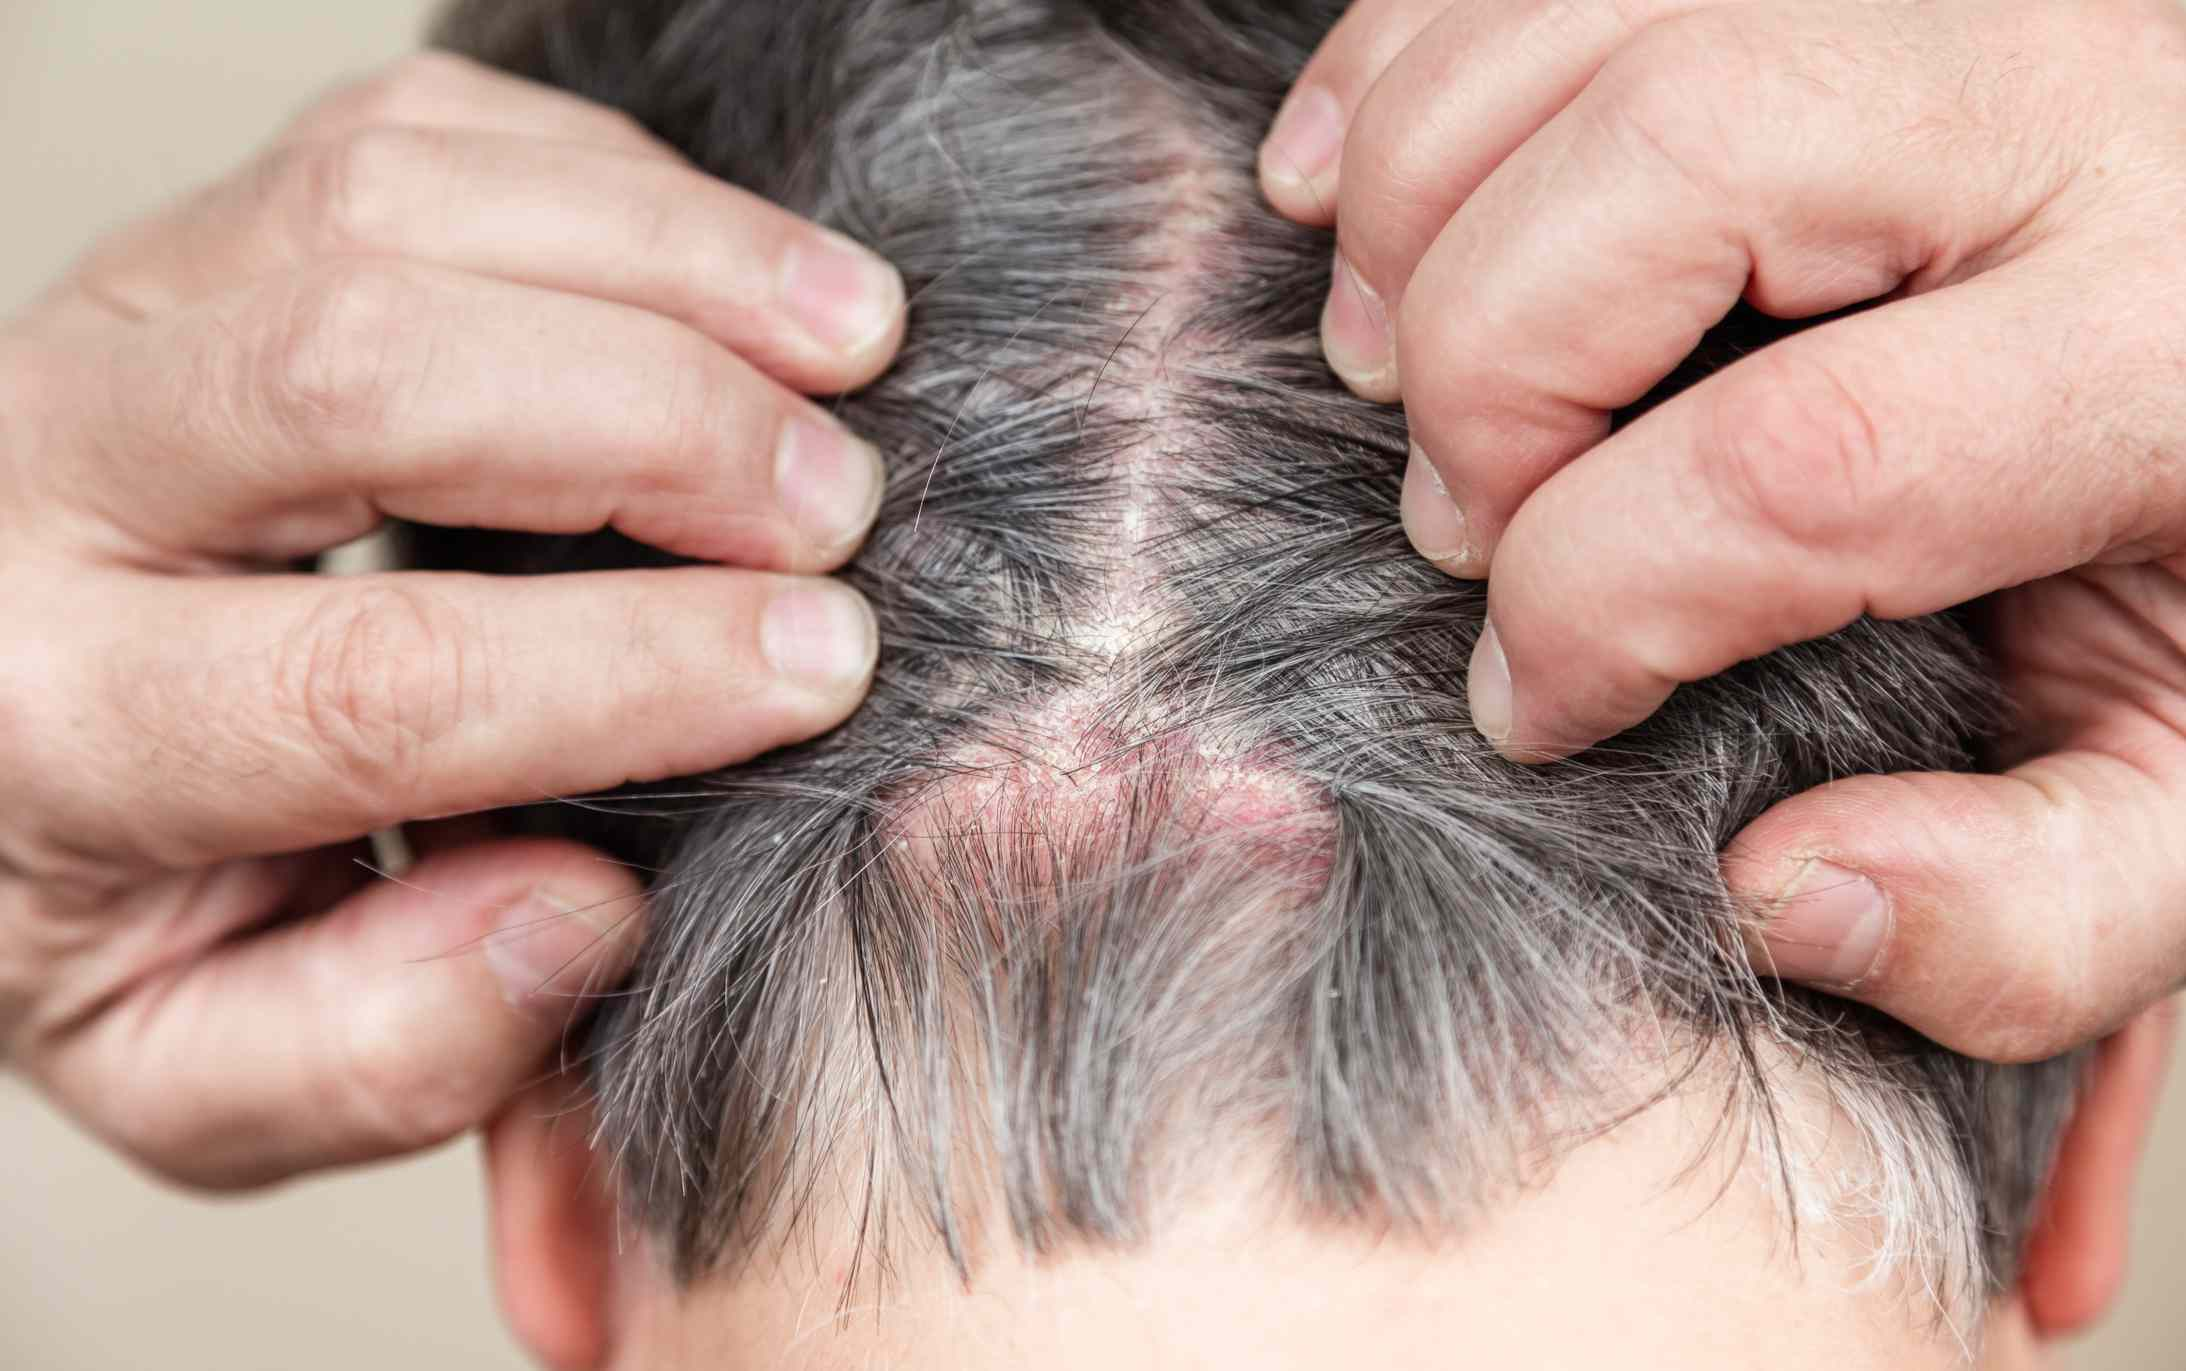 is psoriasis painful on the scalp